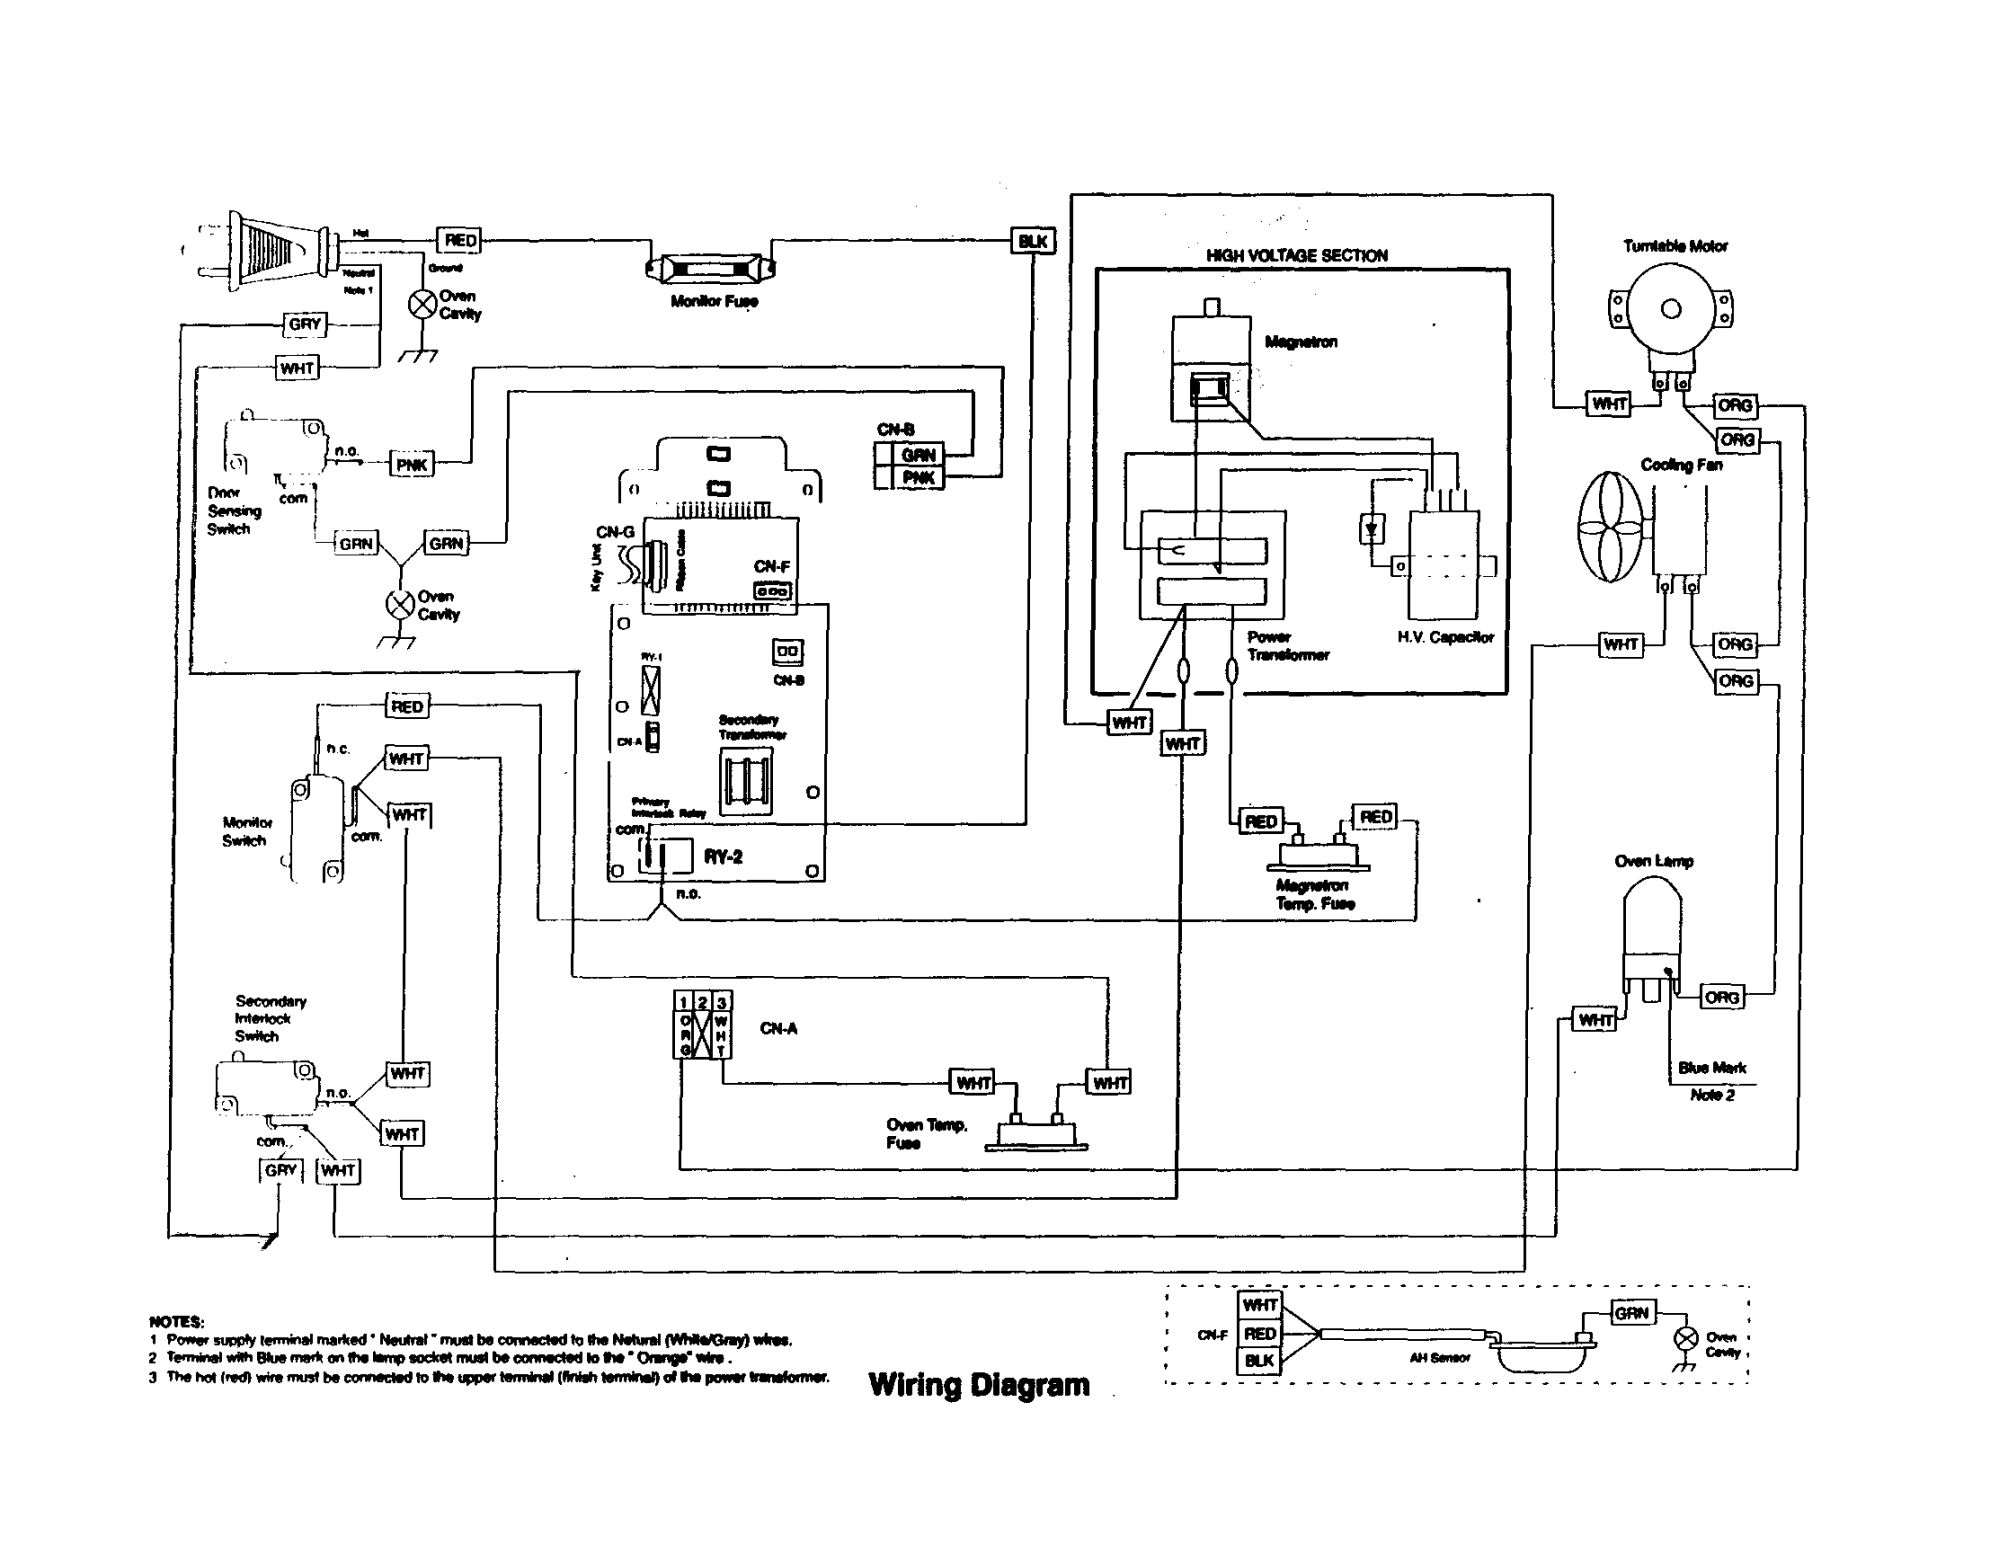 hight resolution of wiring diagram whirlpool microwave over range wiring diagram used wiring diagram whirlpool microwave over range